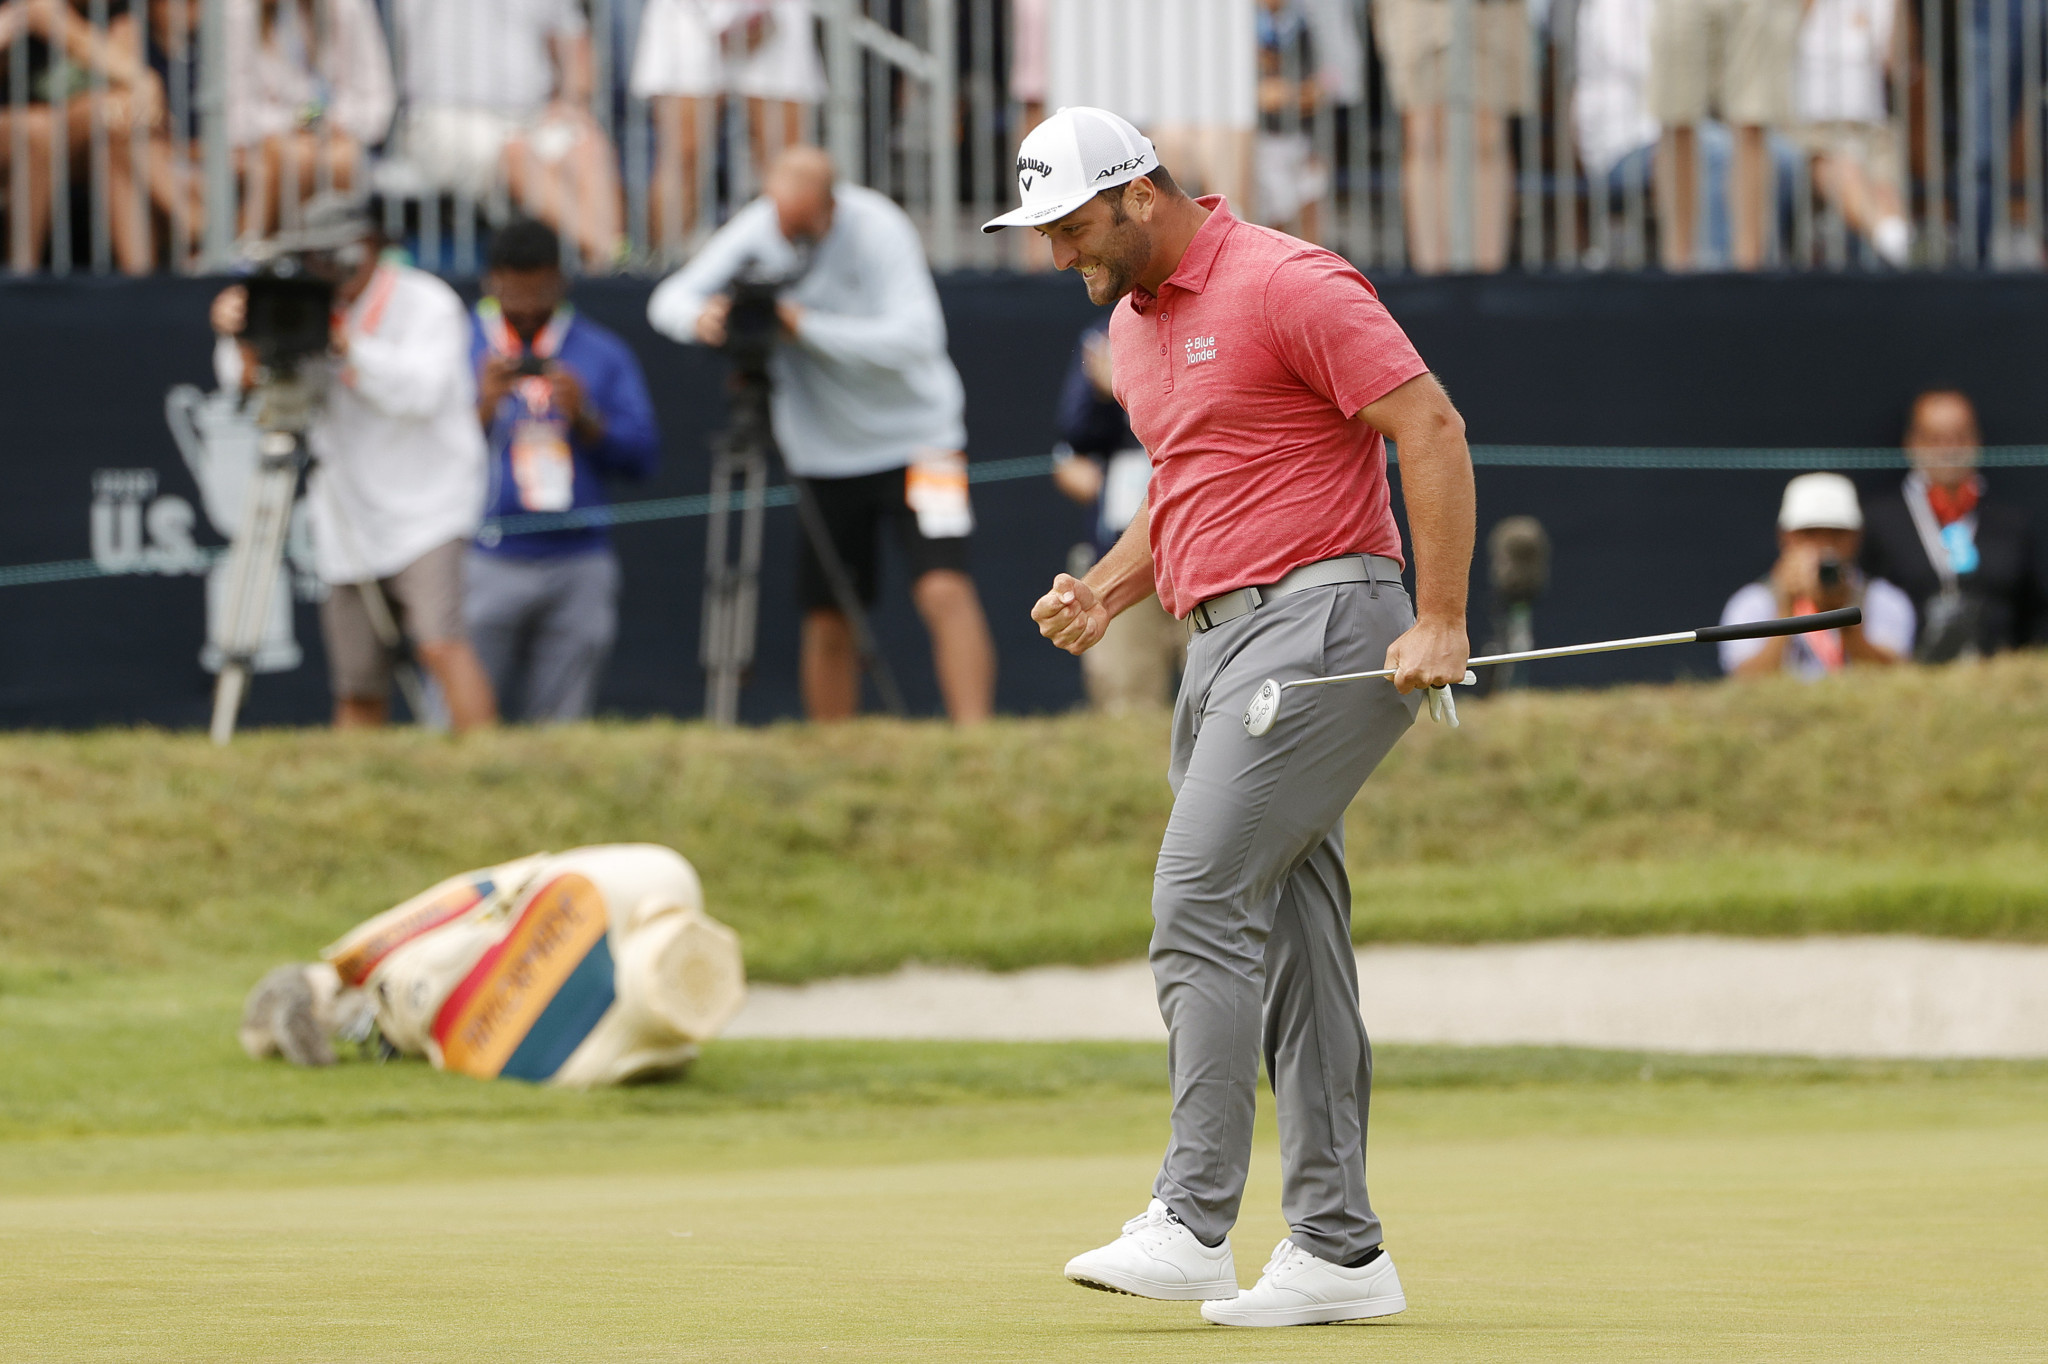 Rahm heads men's golf field for Tokyo 2020 with Oosthuizen among absentees